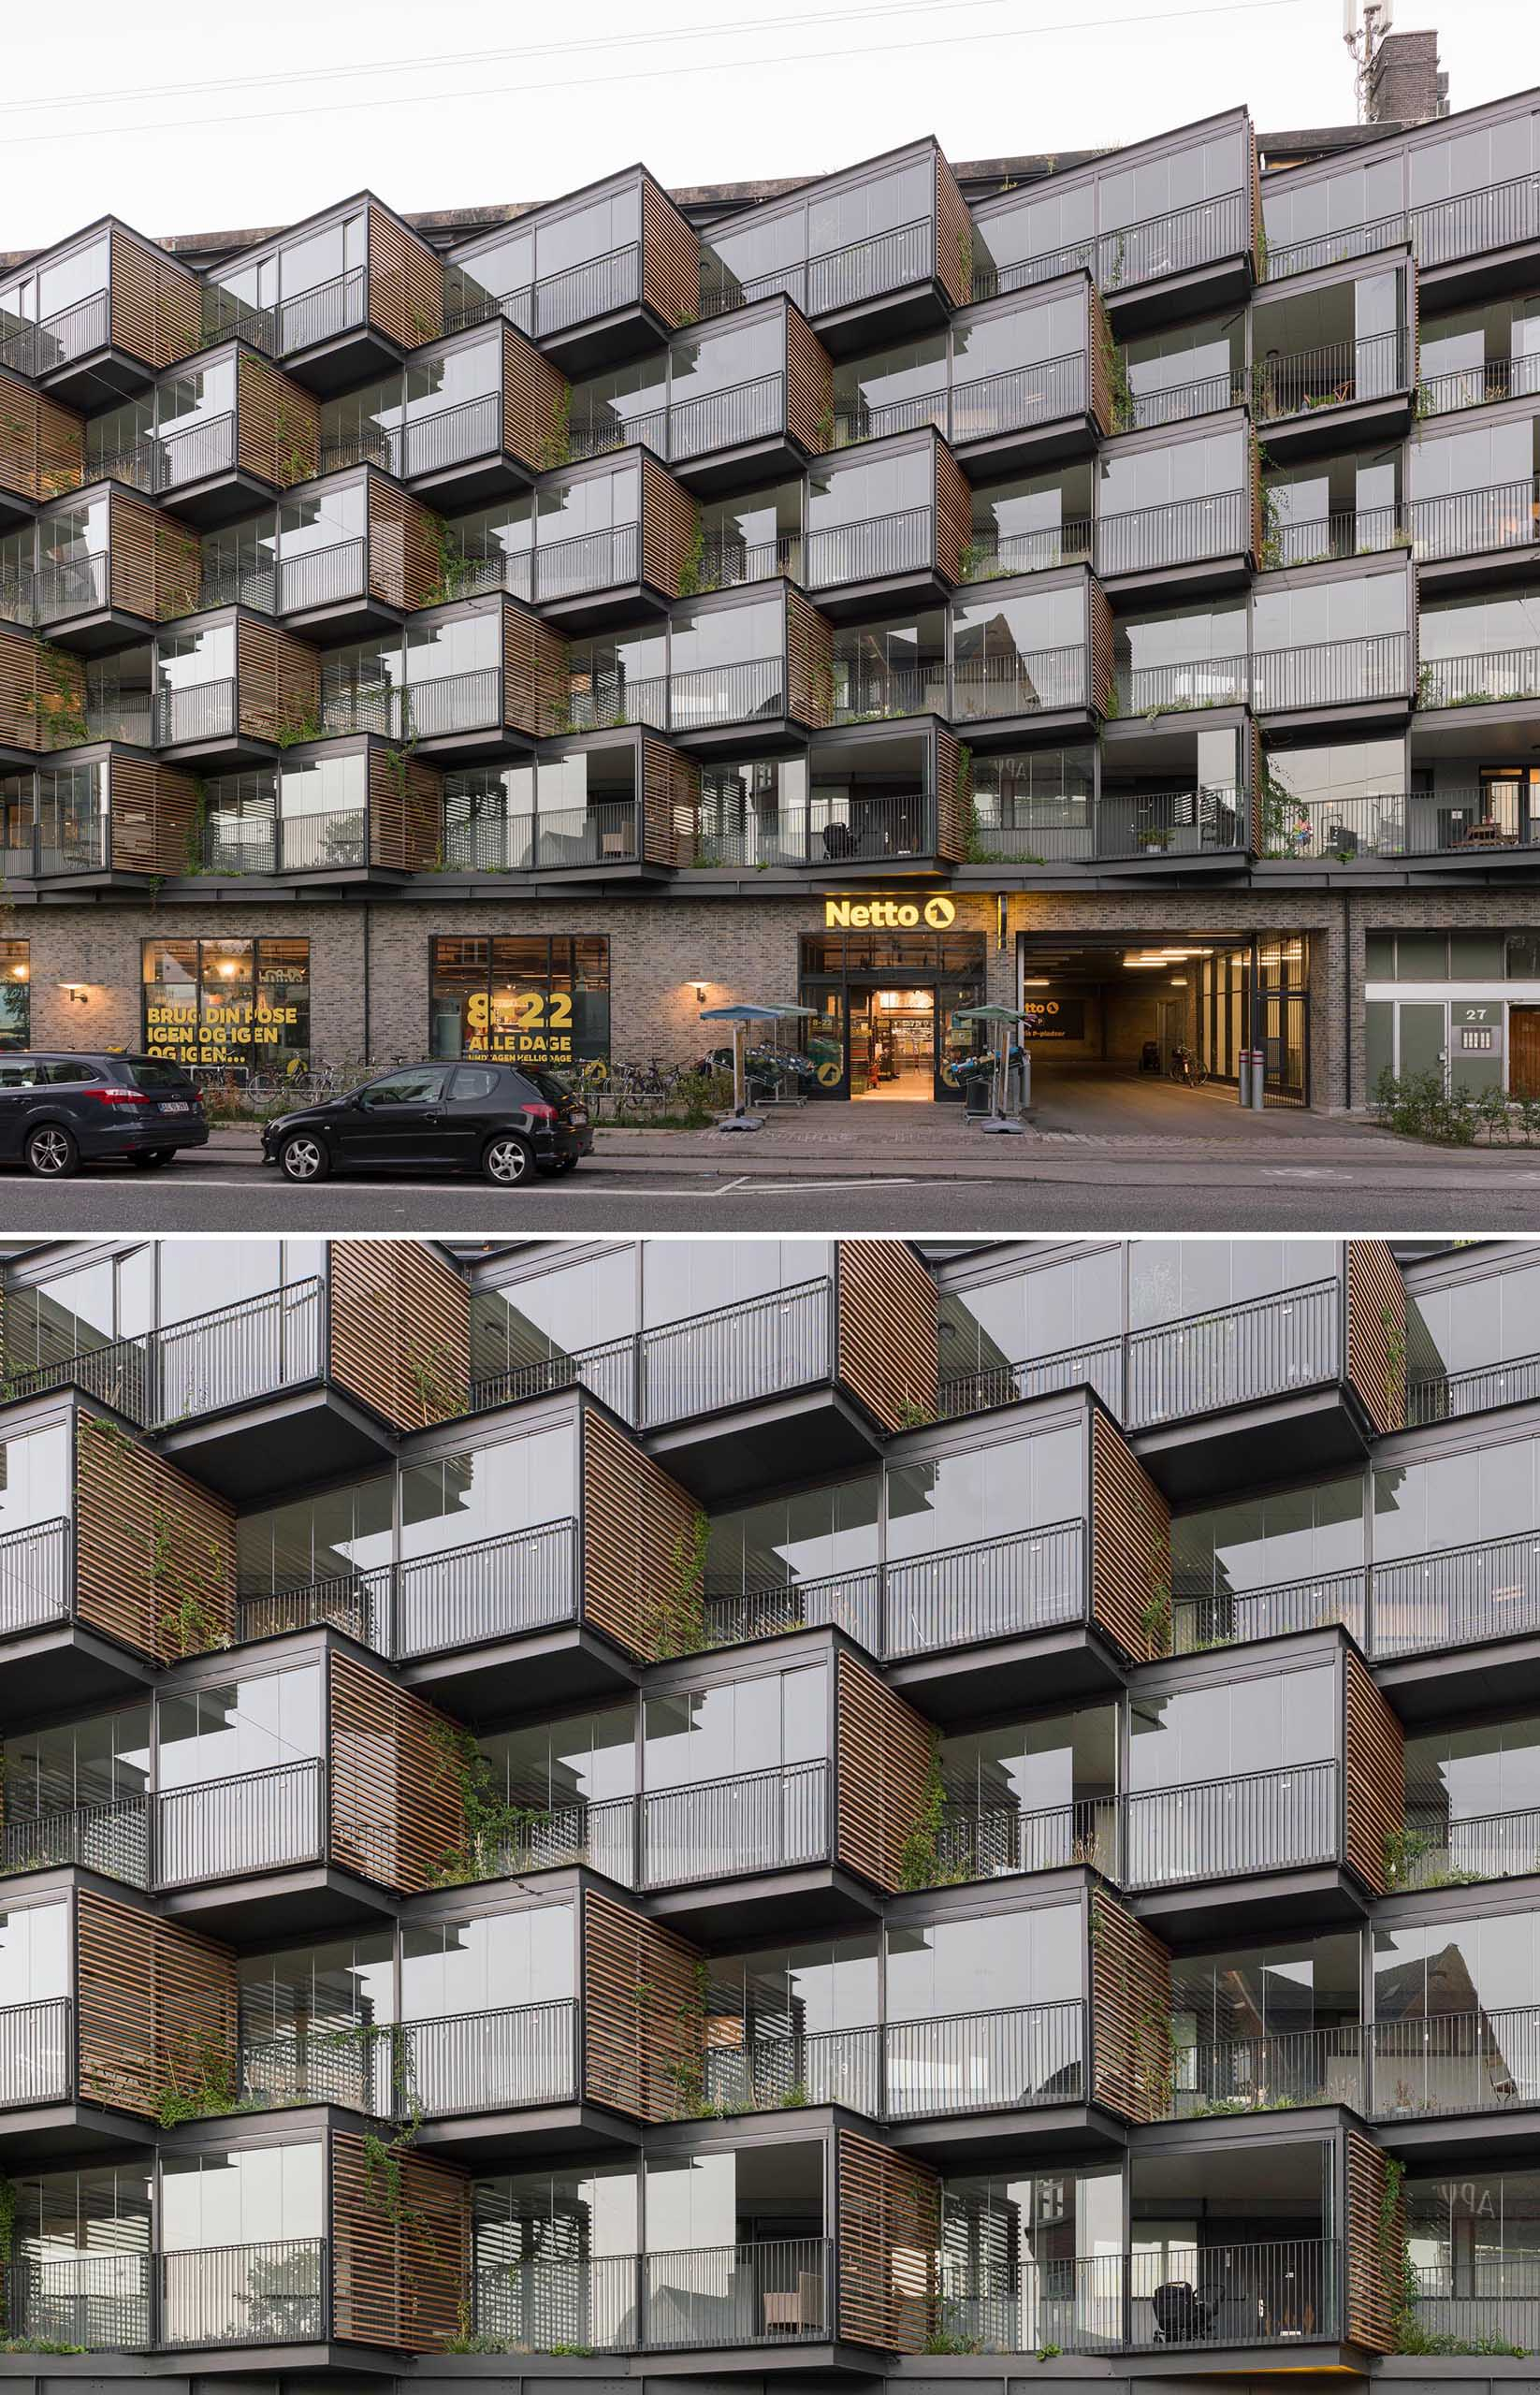 A new facade creates semi-private balconies and green spaces.